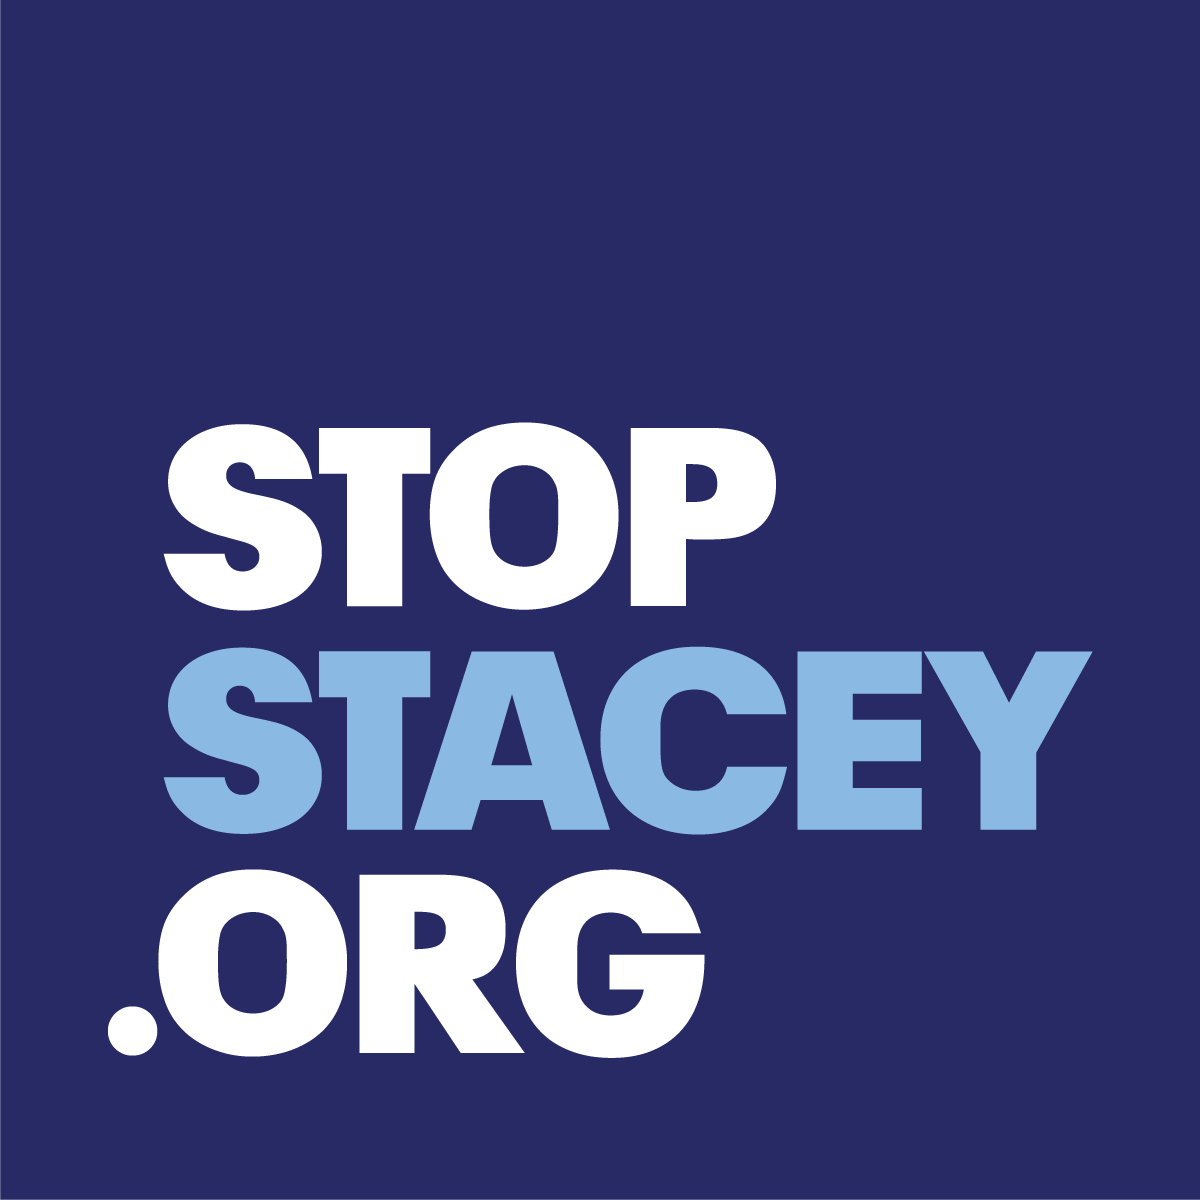 Stopstacey logo 2021 01 main full color